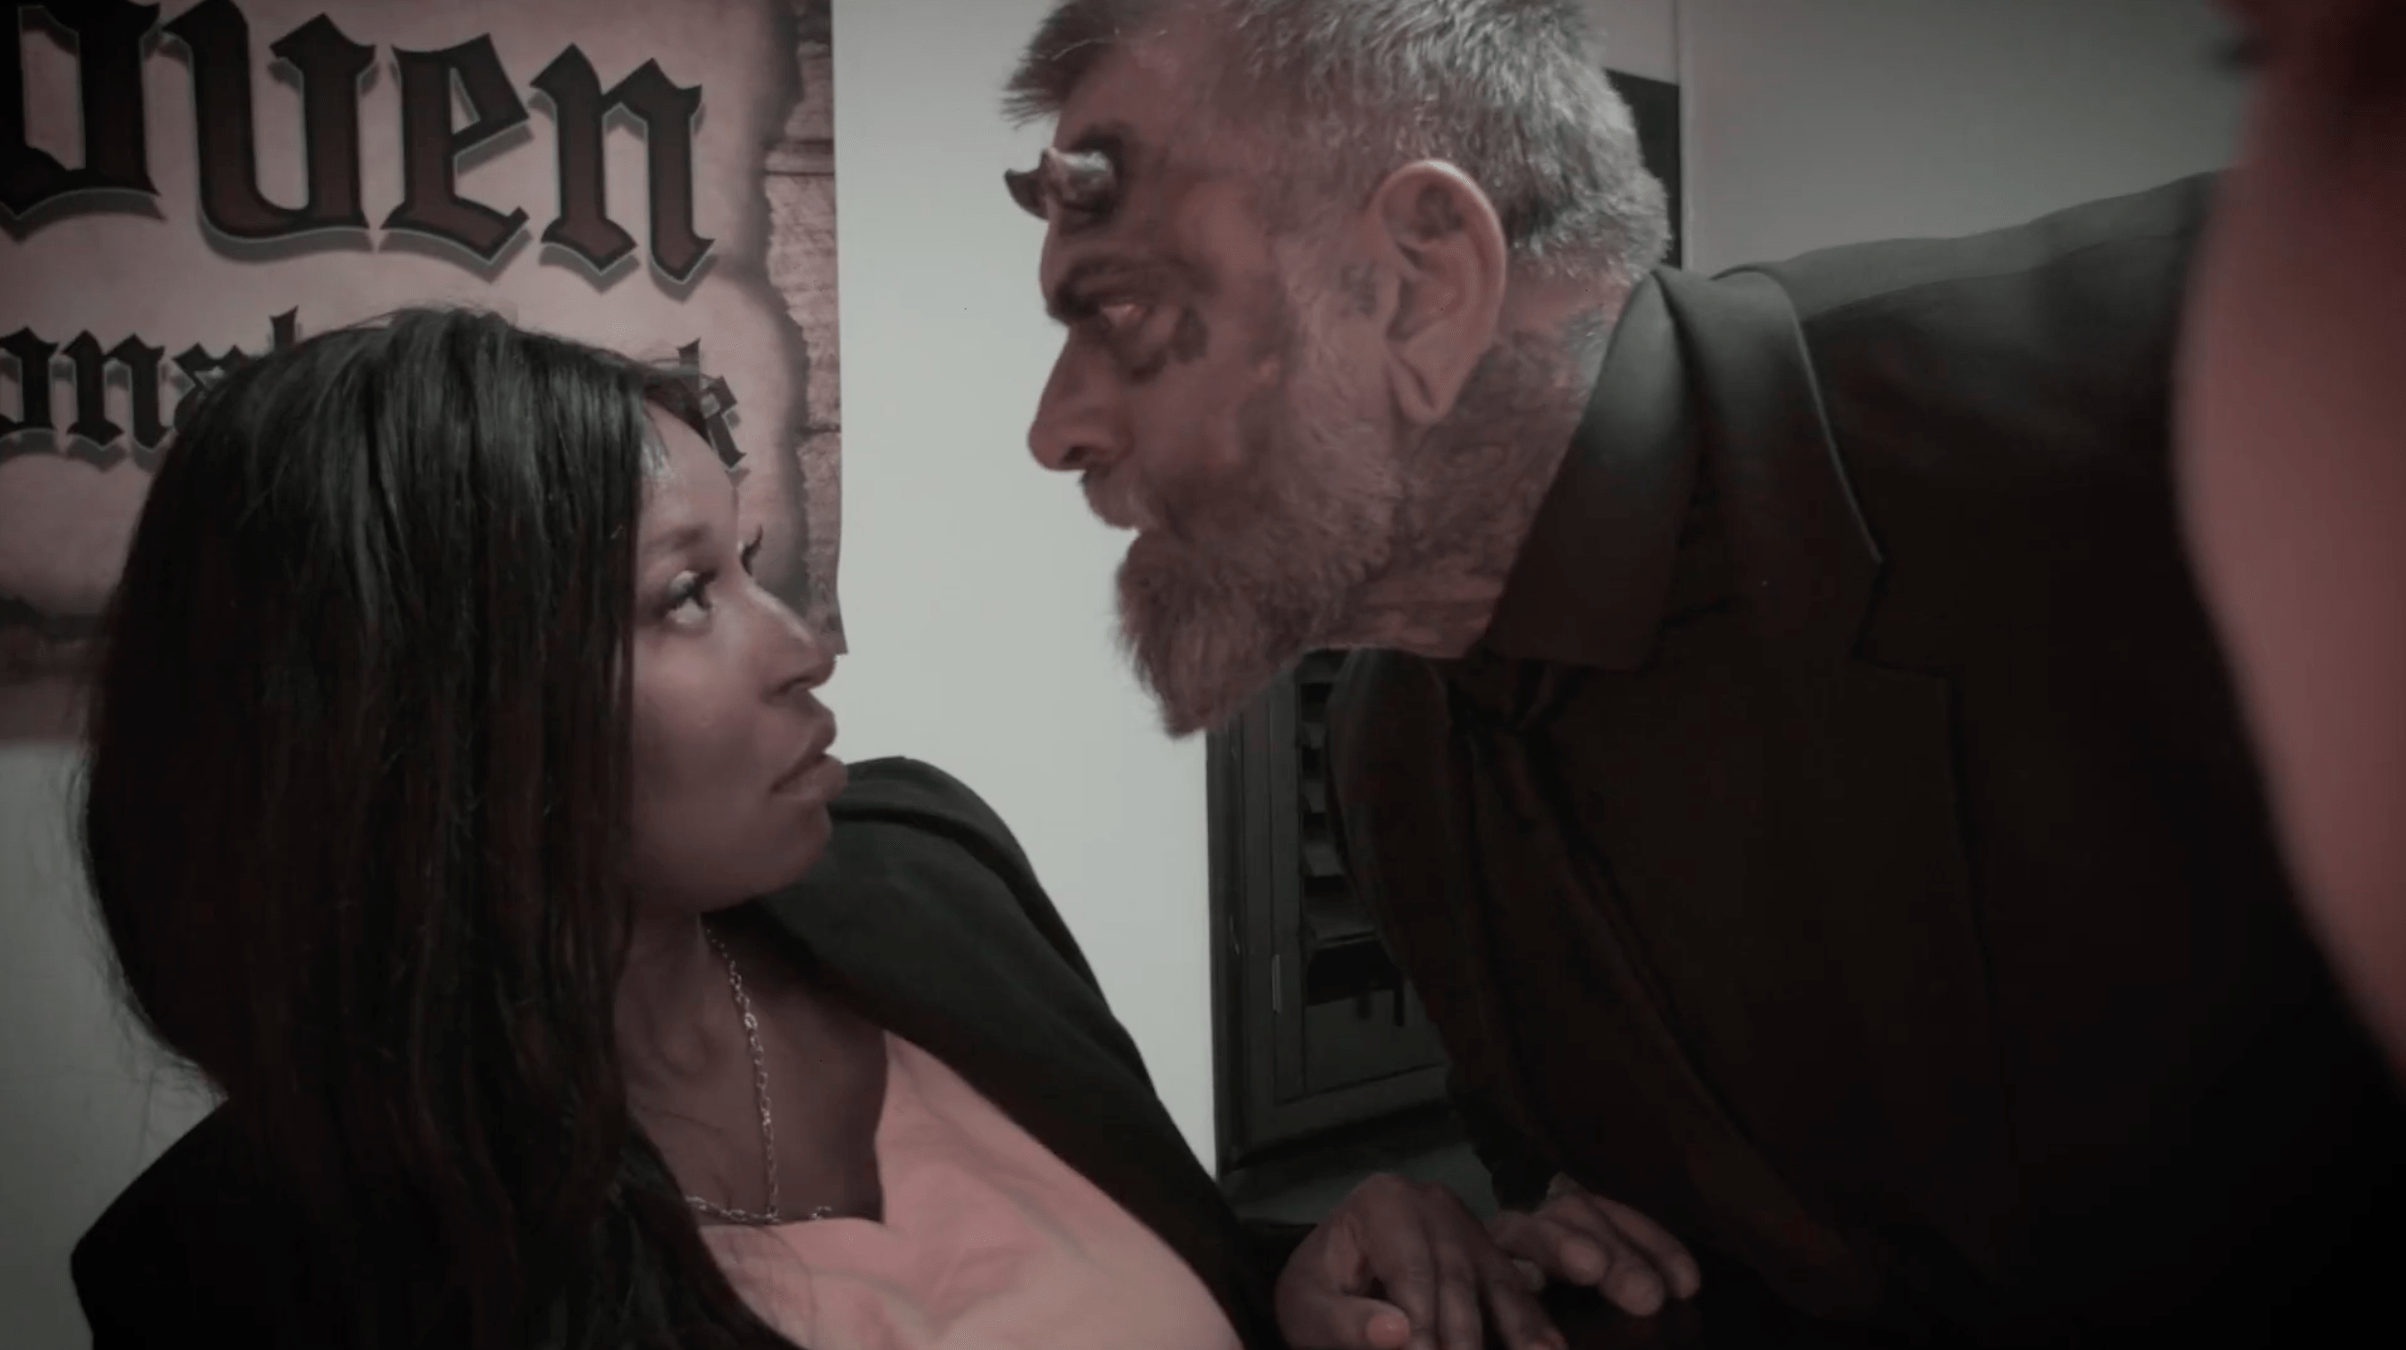 New trailer released for THE DEVIL'S HEIST which is coming to Digital December 8